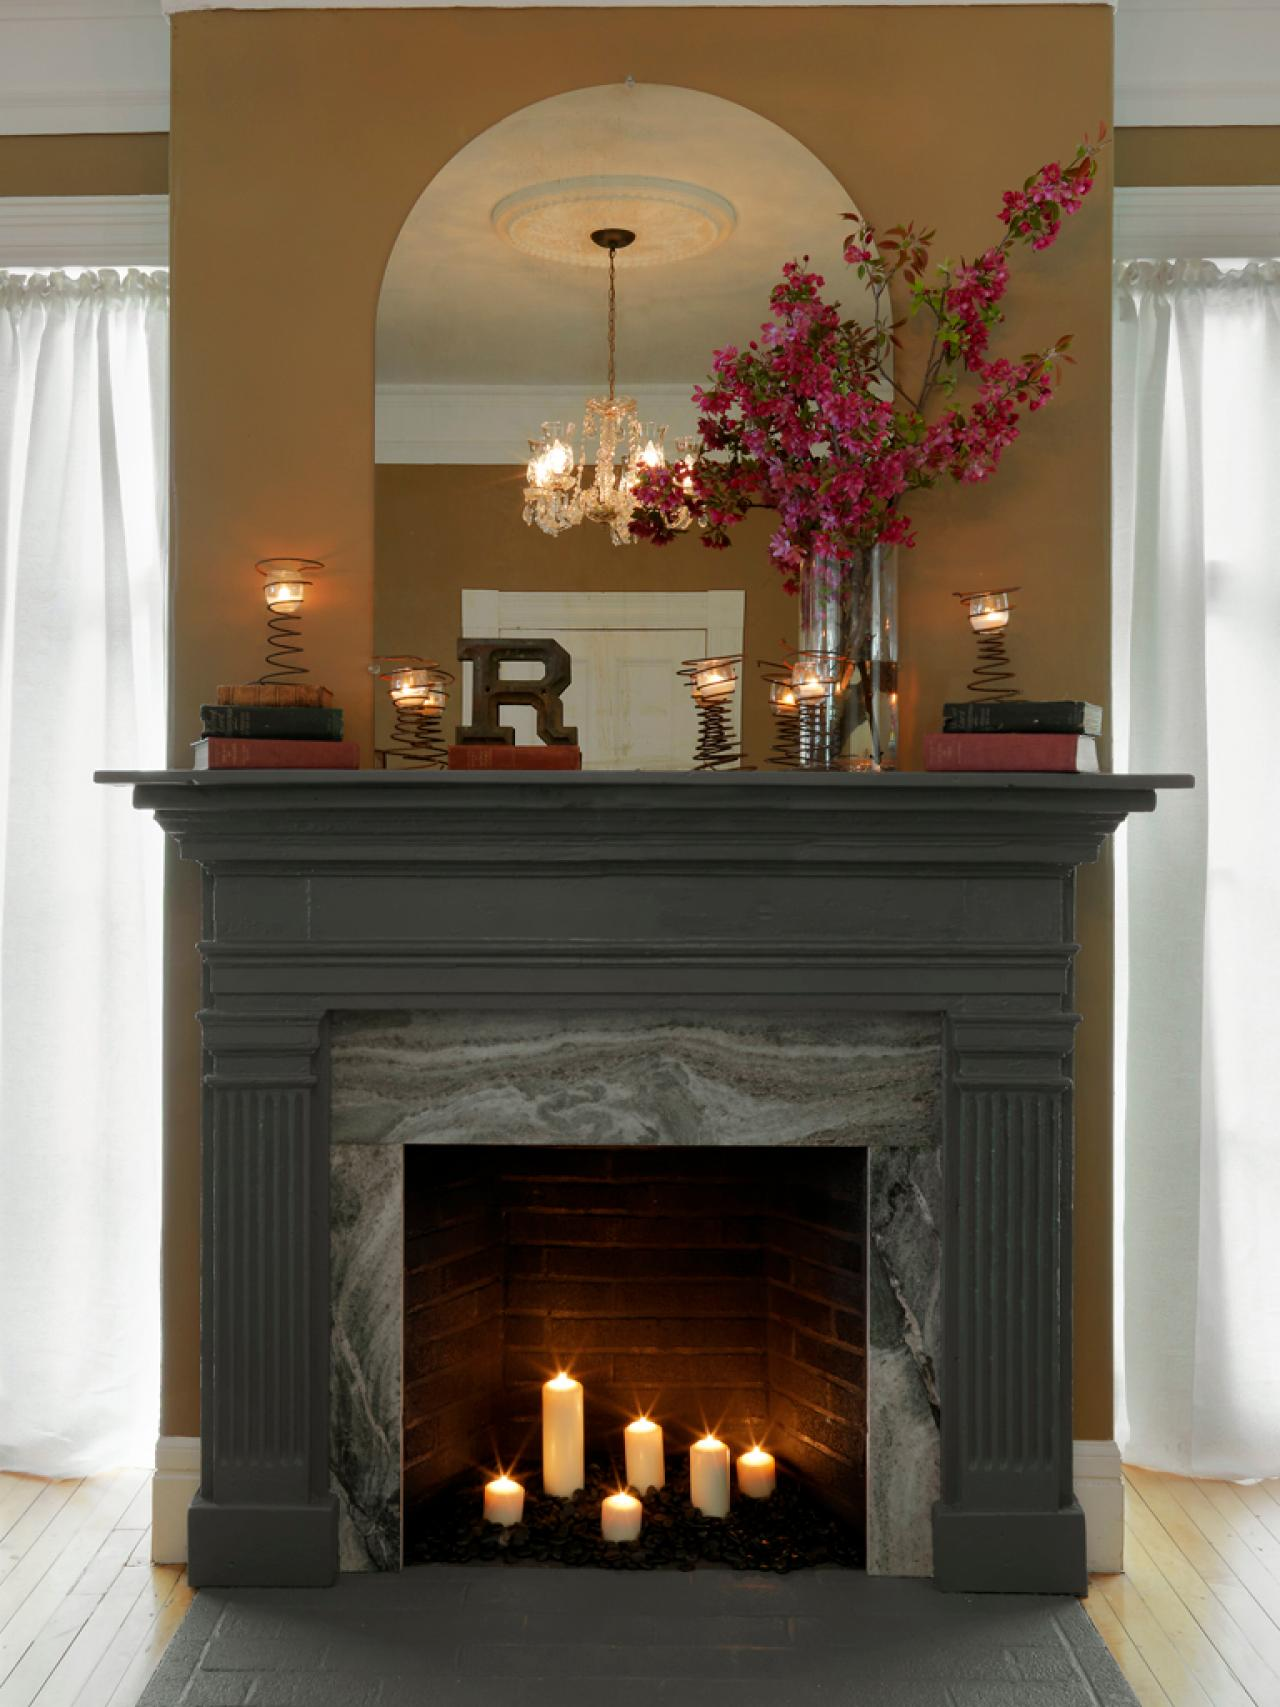 How To Cover A Fireplace Surround And Make Mantel How tos DIY